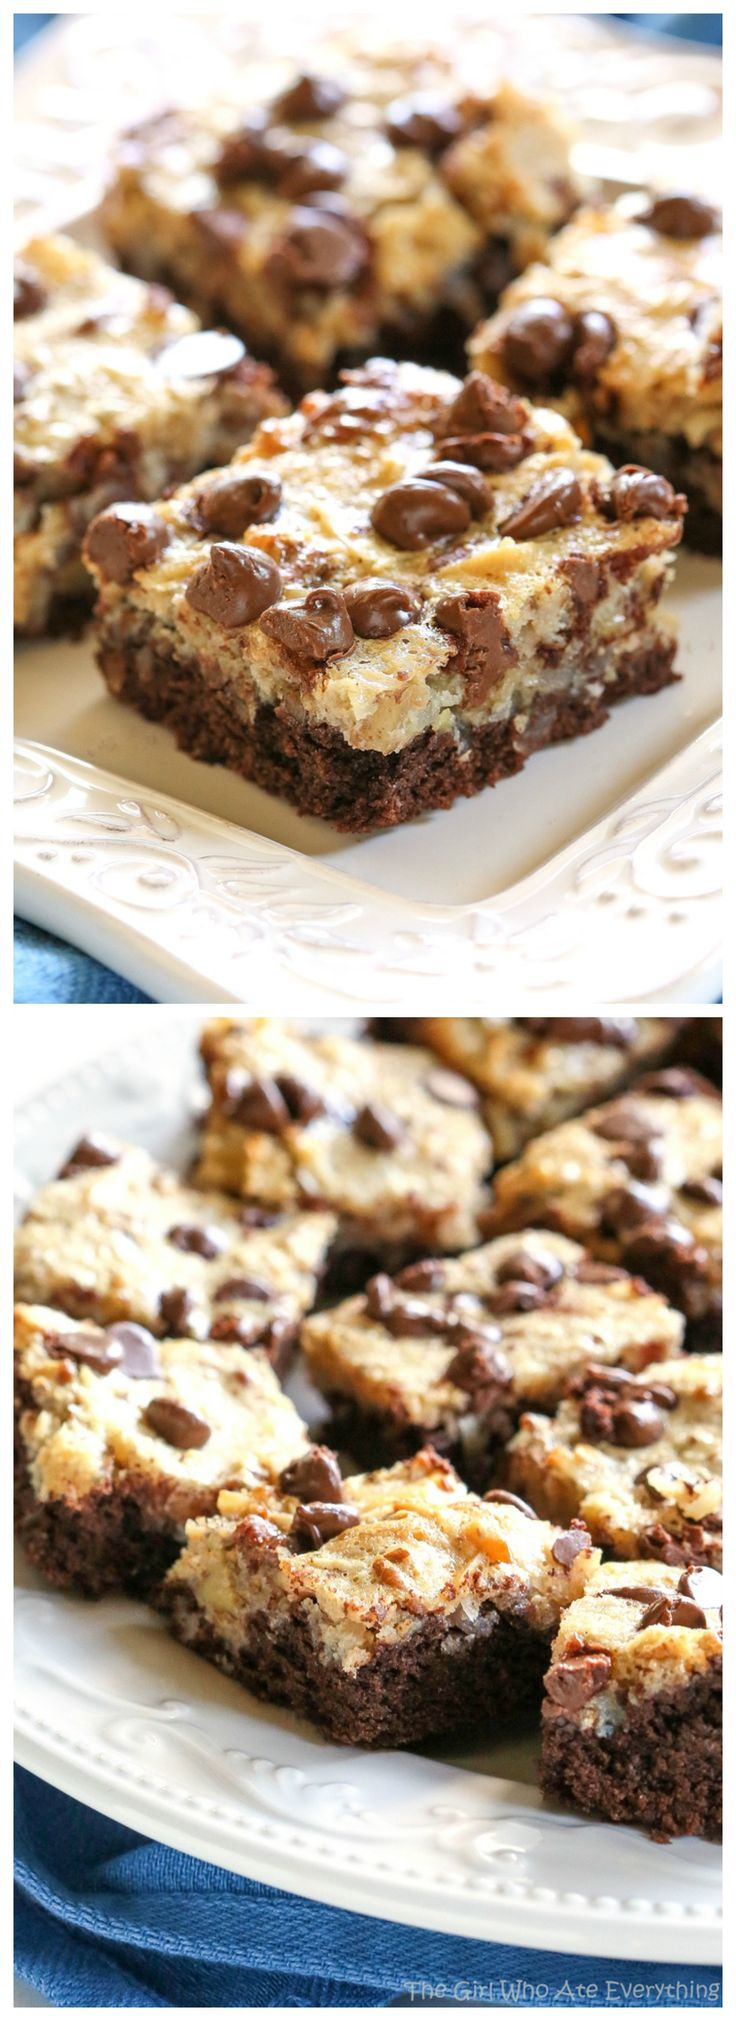 Best 20+ German chocolate bars ideas on Pinterest | German ...